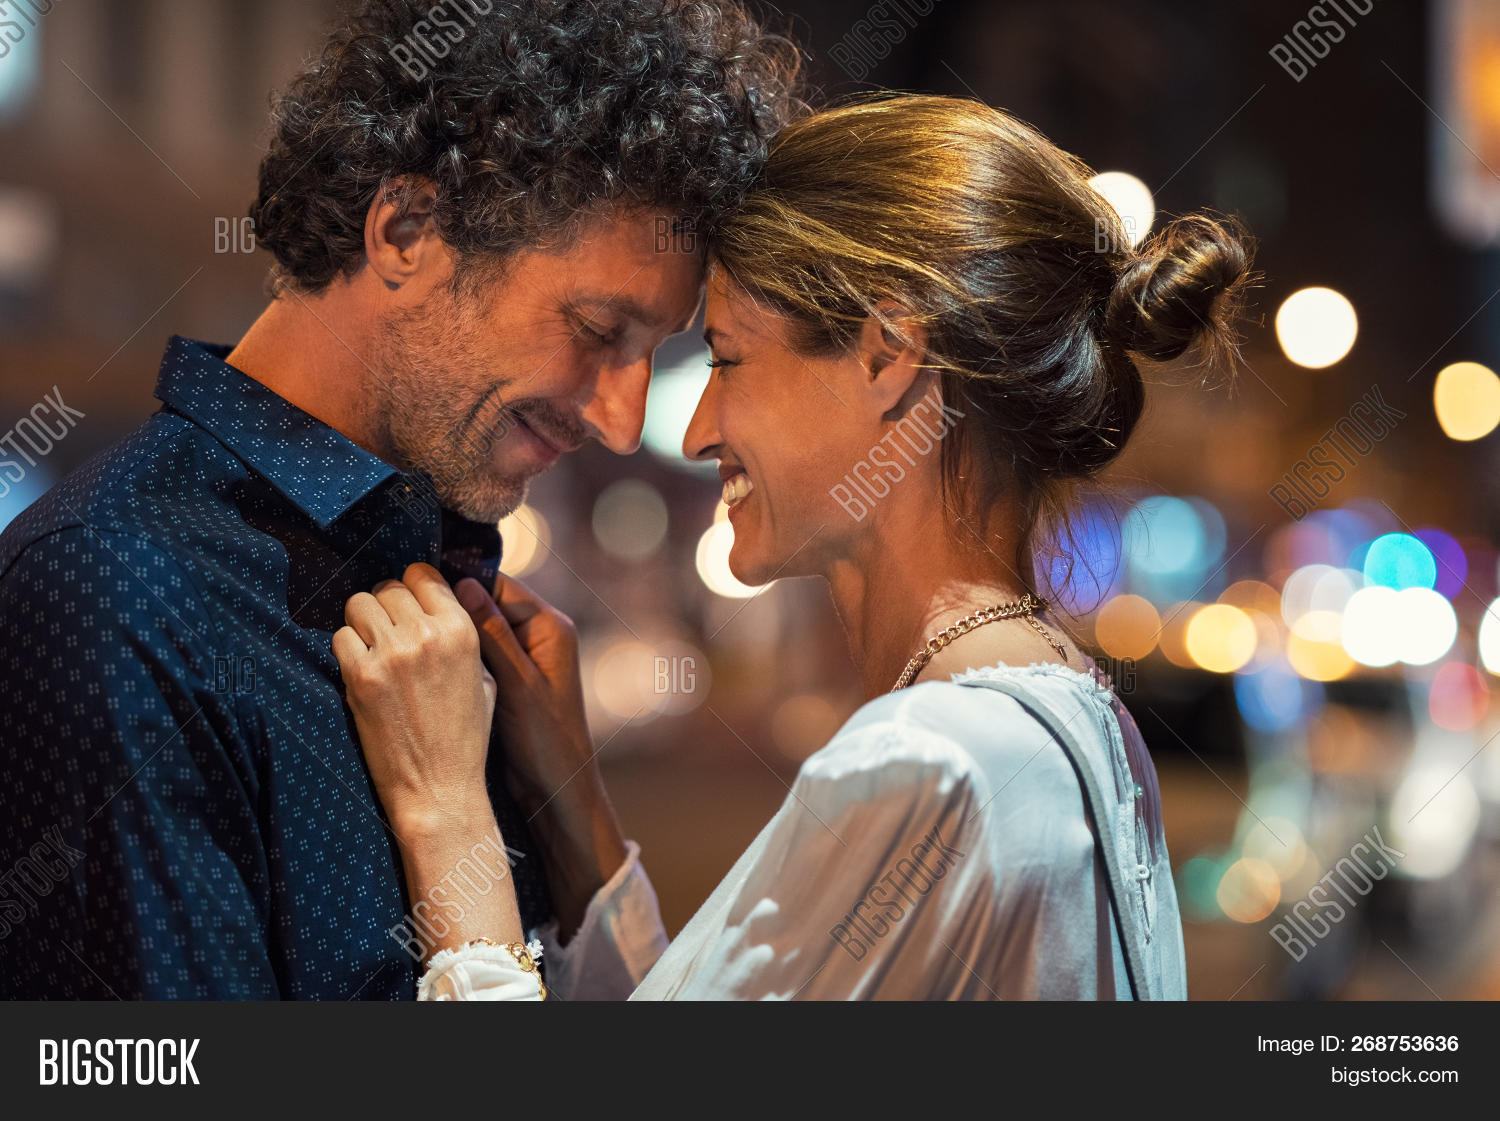 Romantic man and woman on evening date. Happy husband and smiling wife embracing touching head to he